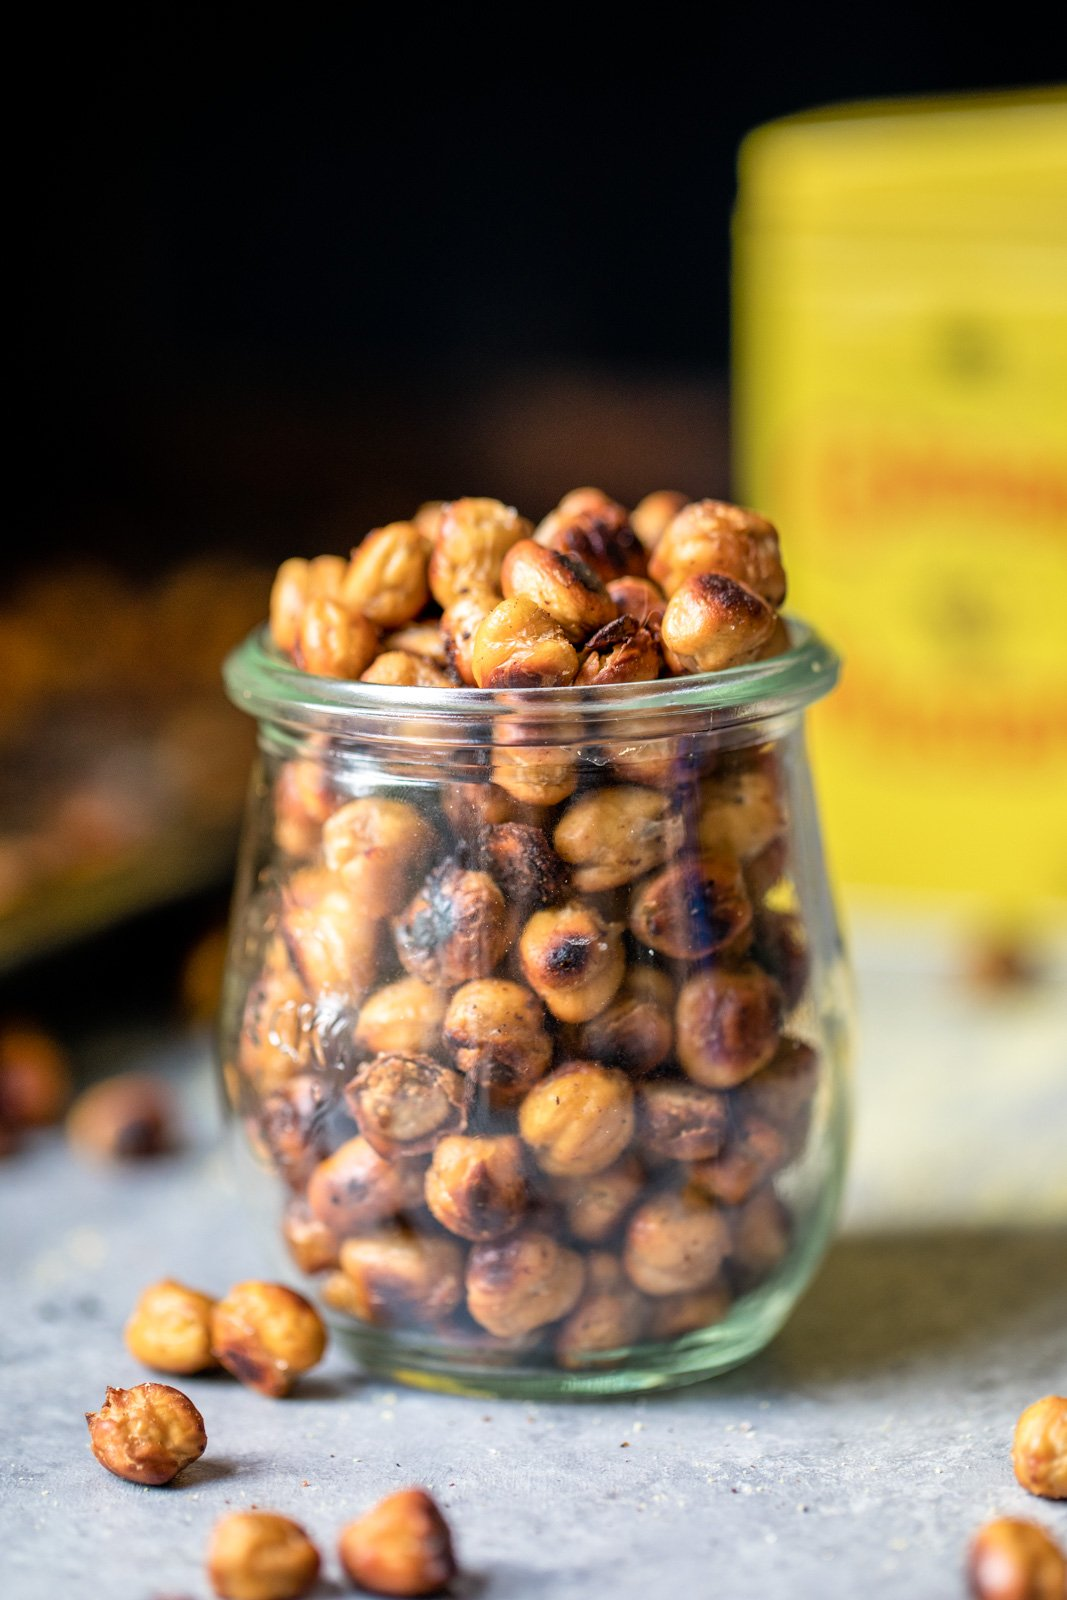 Protein-packed chickpea recipes: roasted chickpeas in a jar